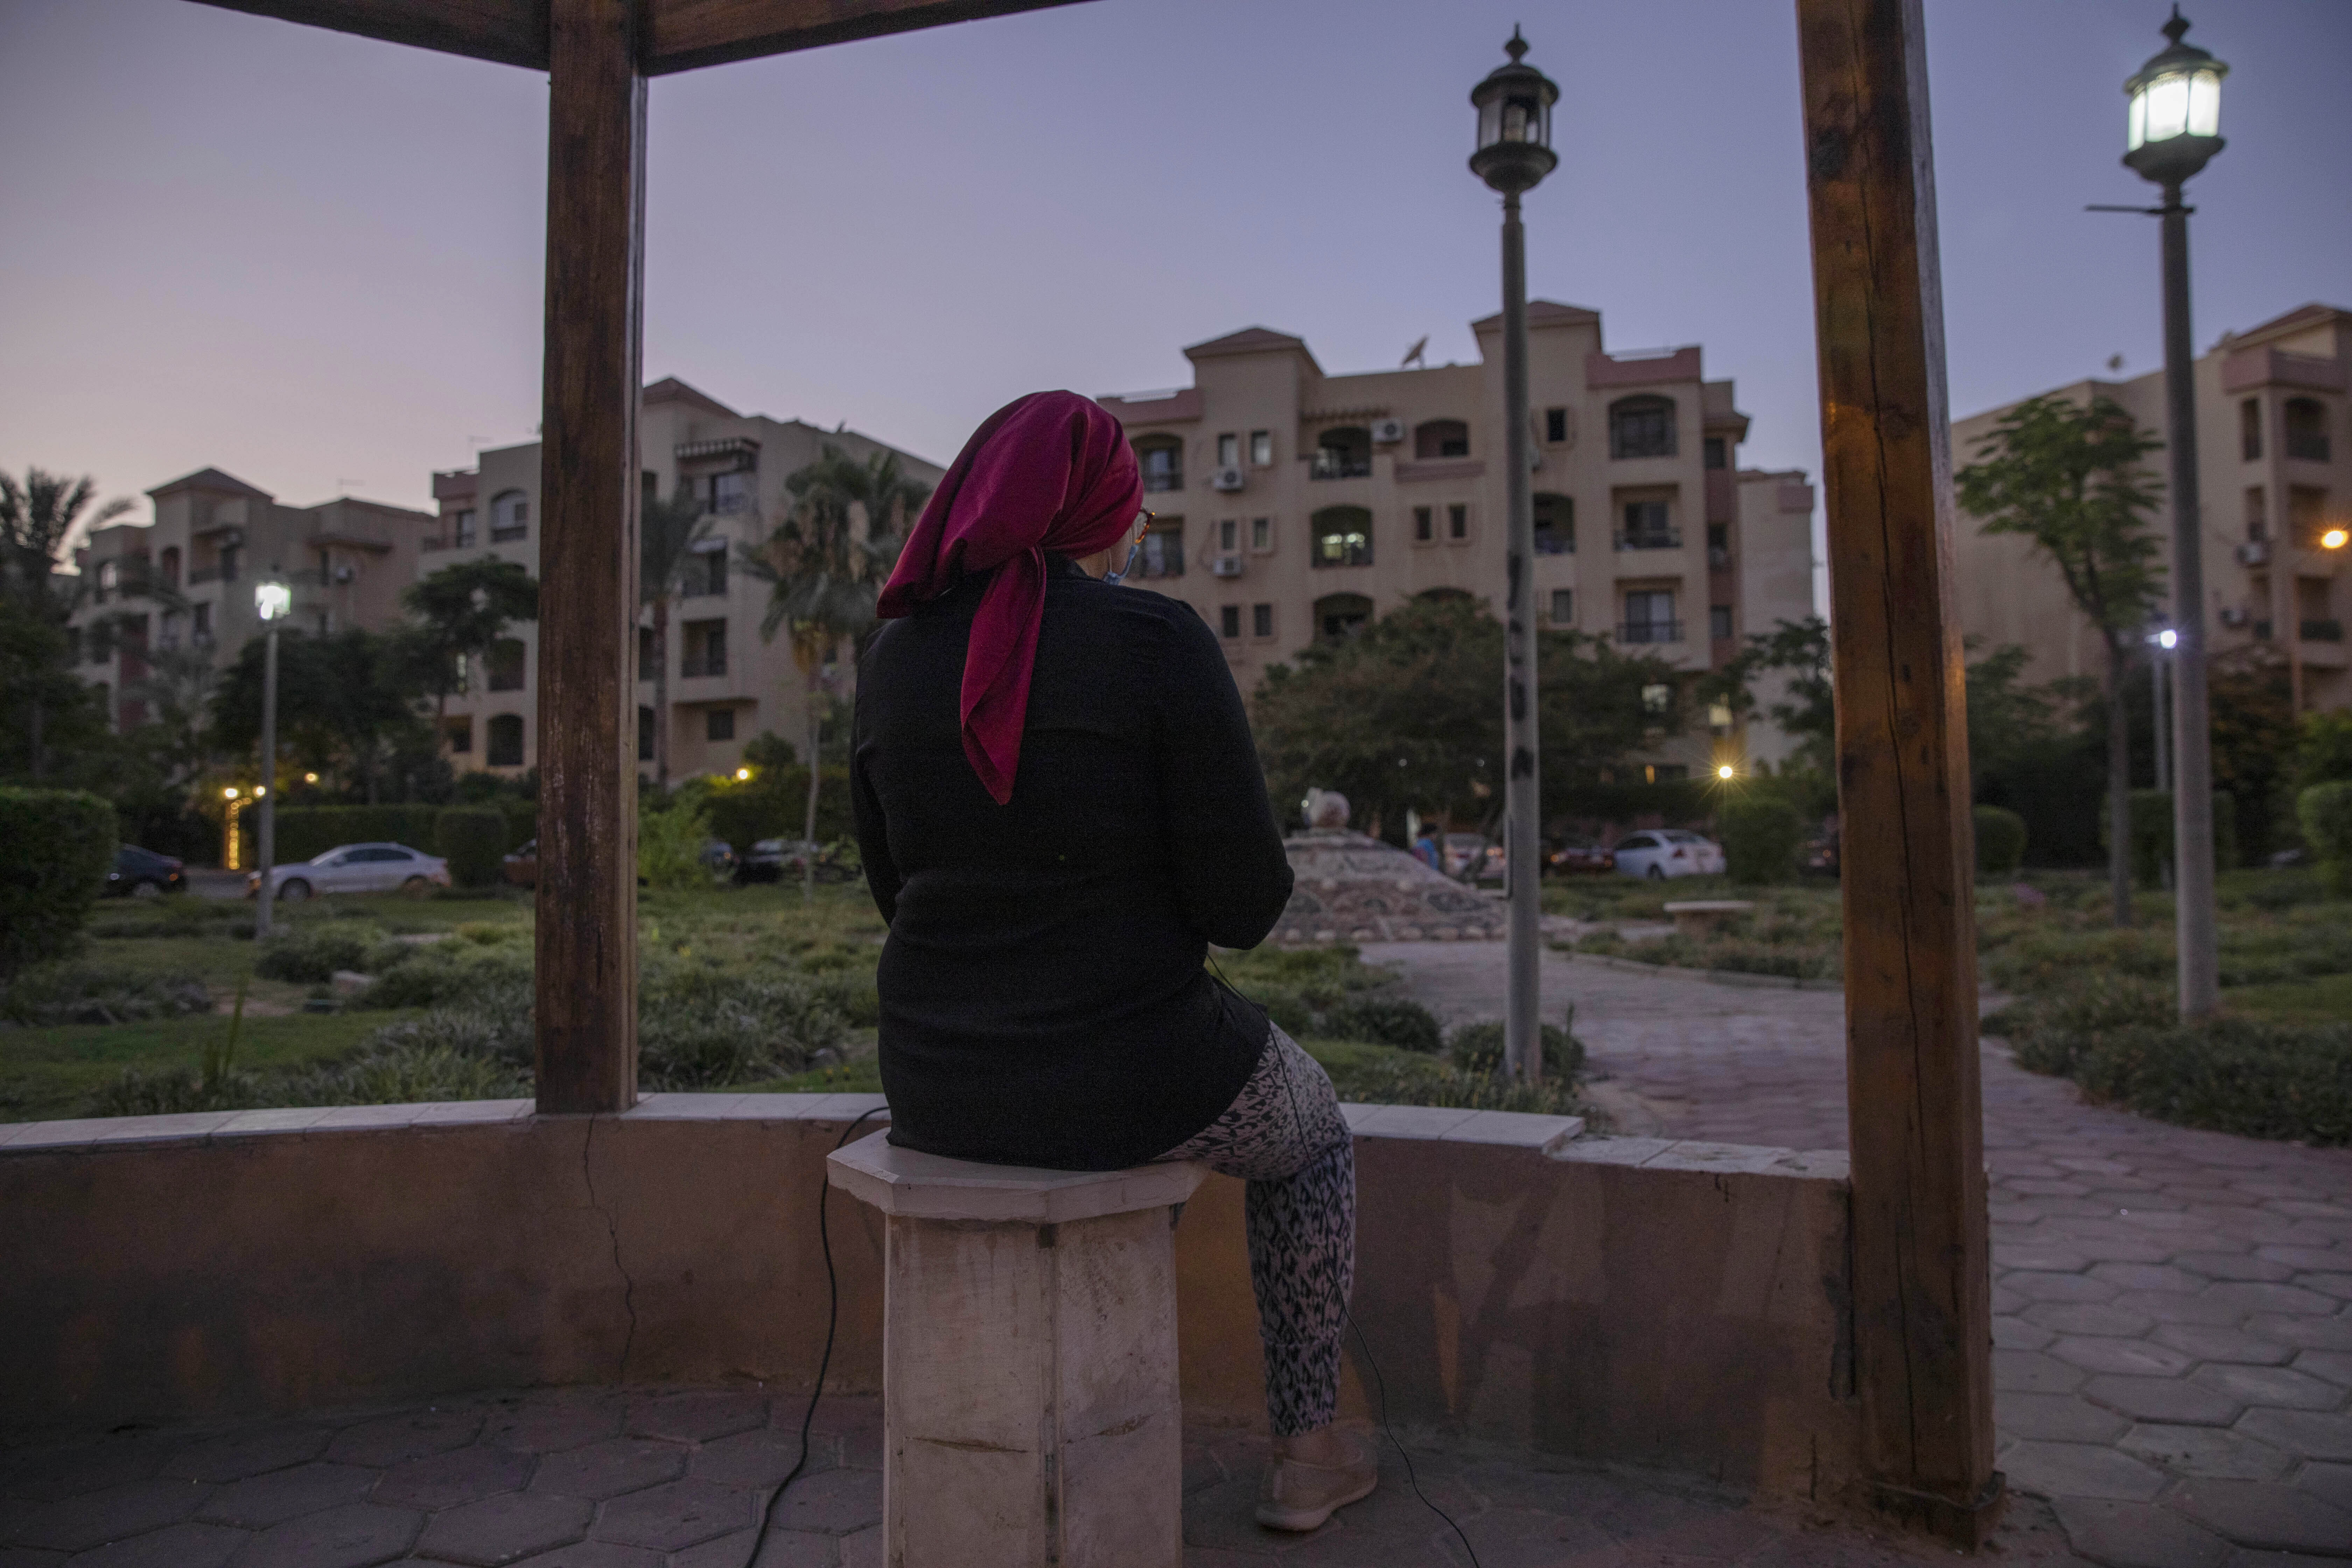 Noha, an Egyptian engineer, who was chosen to be among the U.S. government's roughly 50,000 visa lottery winners this year, speaks during an interview near her home in Cairo, Egypt, on June 30, 2020.